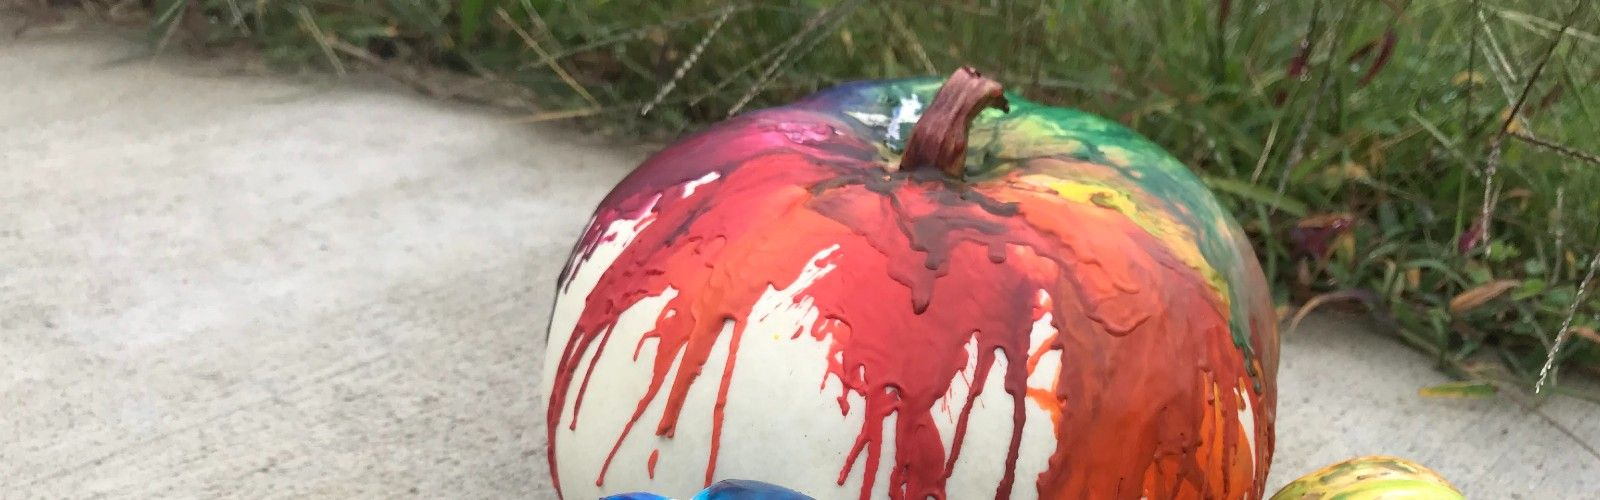 white pumpkins covered with melted crayon wax